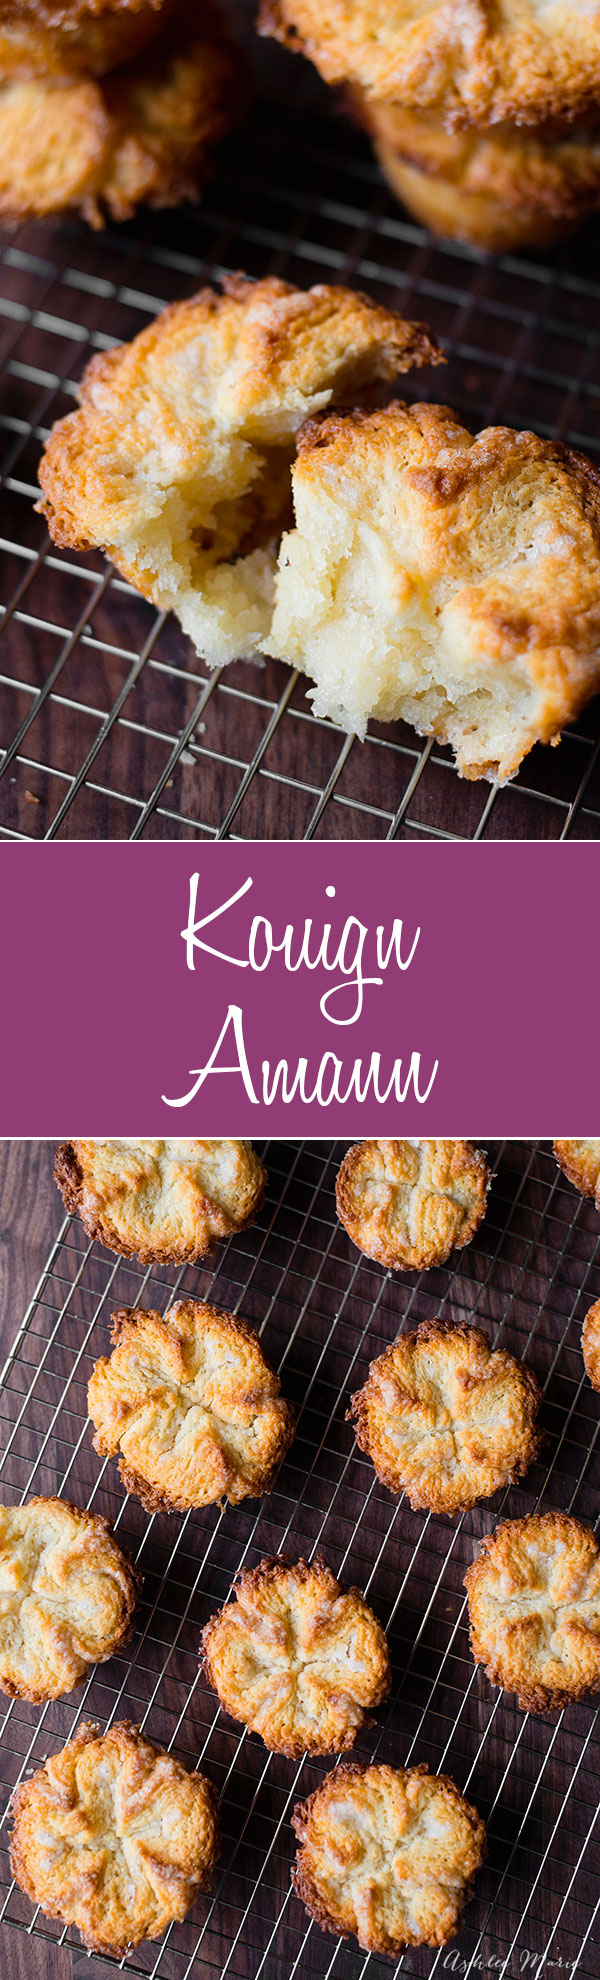 It doesn't get much better than layers of dough and butter, add some sugar and you will die with how good these kouign amanns are! Flaky, sweet with a crunchy outside and a soft center. full recipe and video tutorial